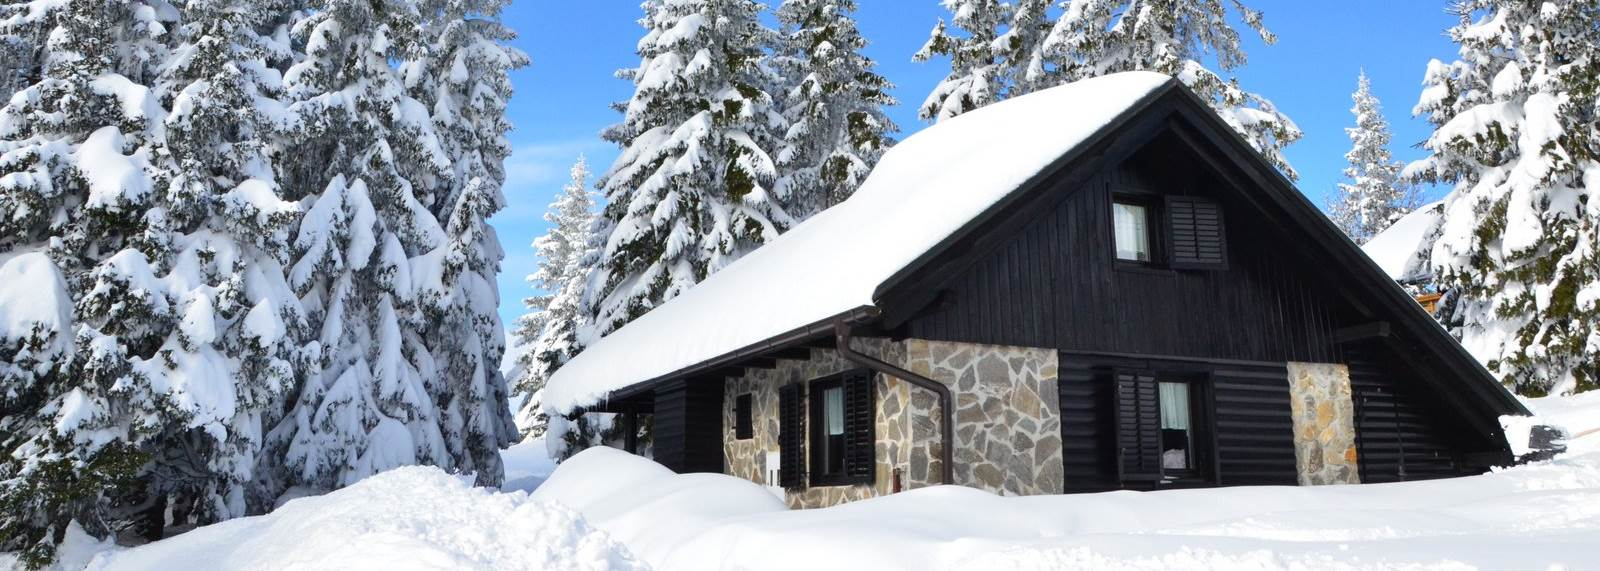 Chalet Klara in winter time